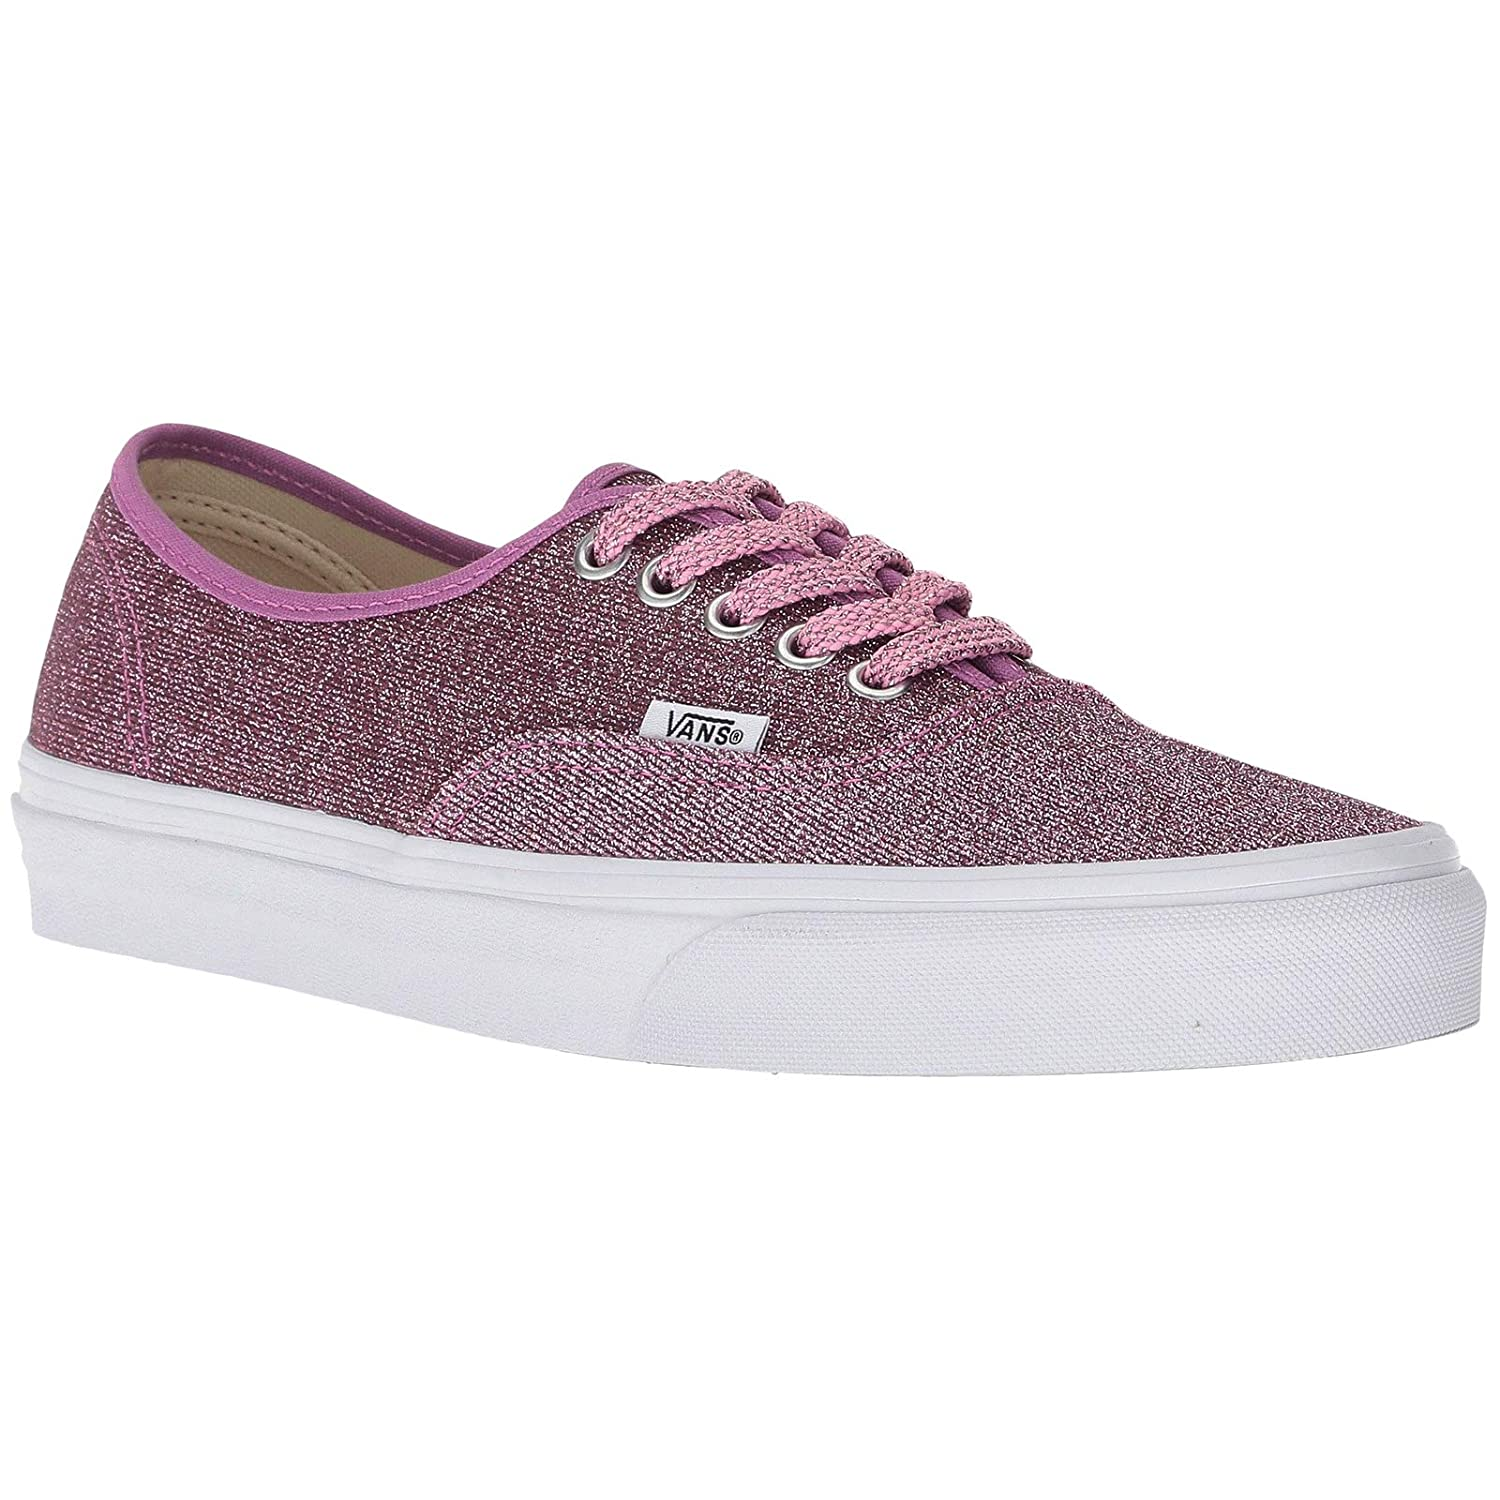 8f6a26301e8b Vans Authentic Lurex Glitter Trainers Pink 6 UK: Amazon.co.uk: Shoes & Bags